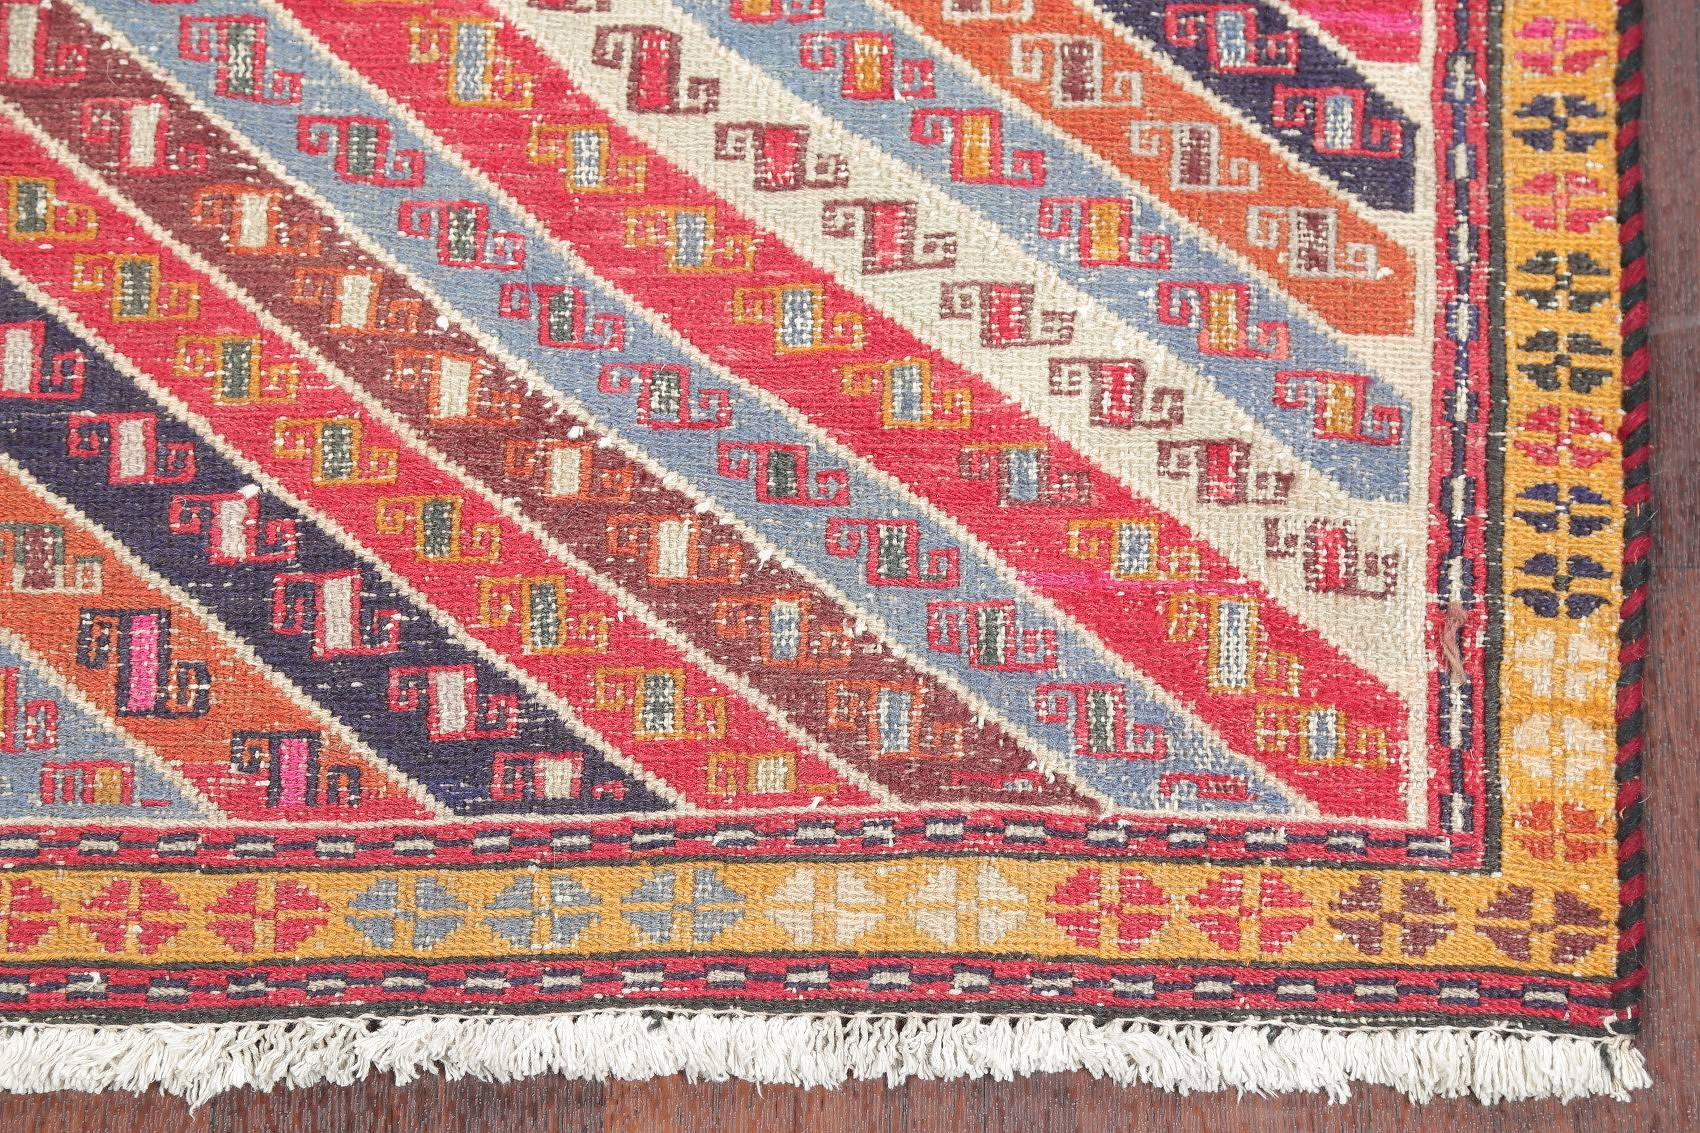 Antique Flat-Woven Geometric Kilim Persian Hand-Woven 3x7 Runner Rug